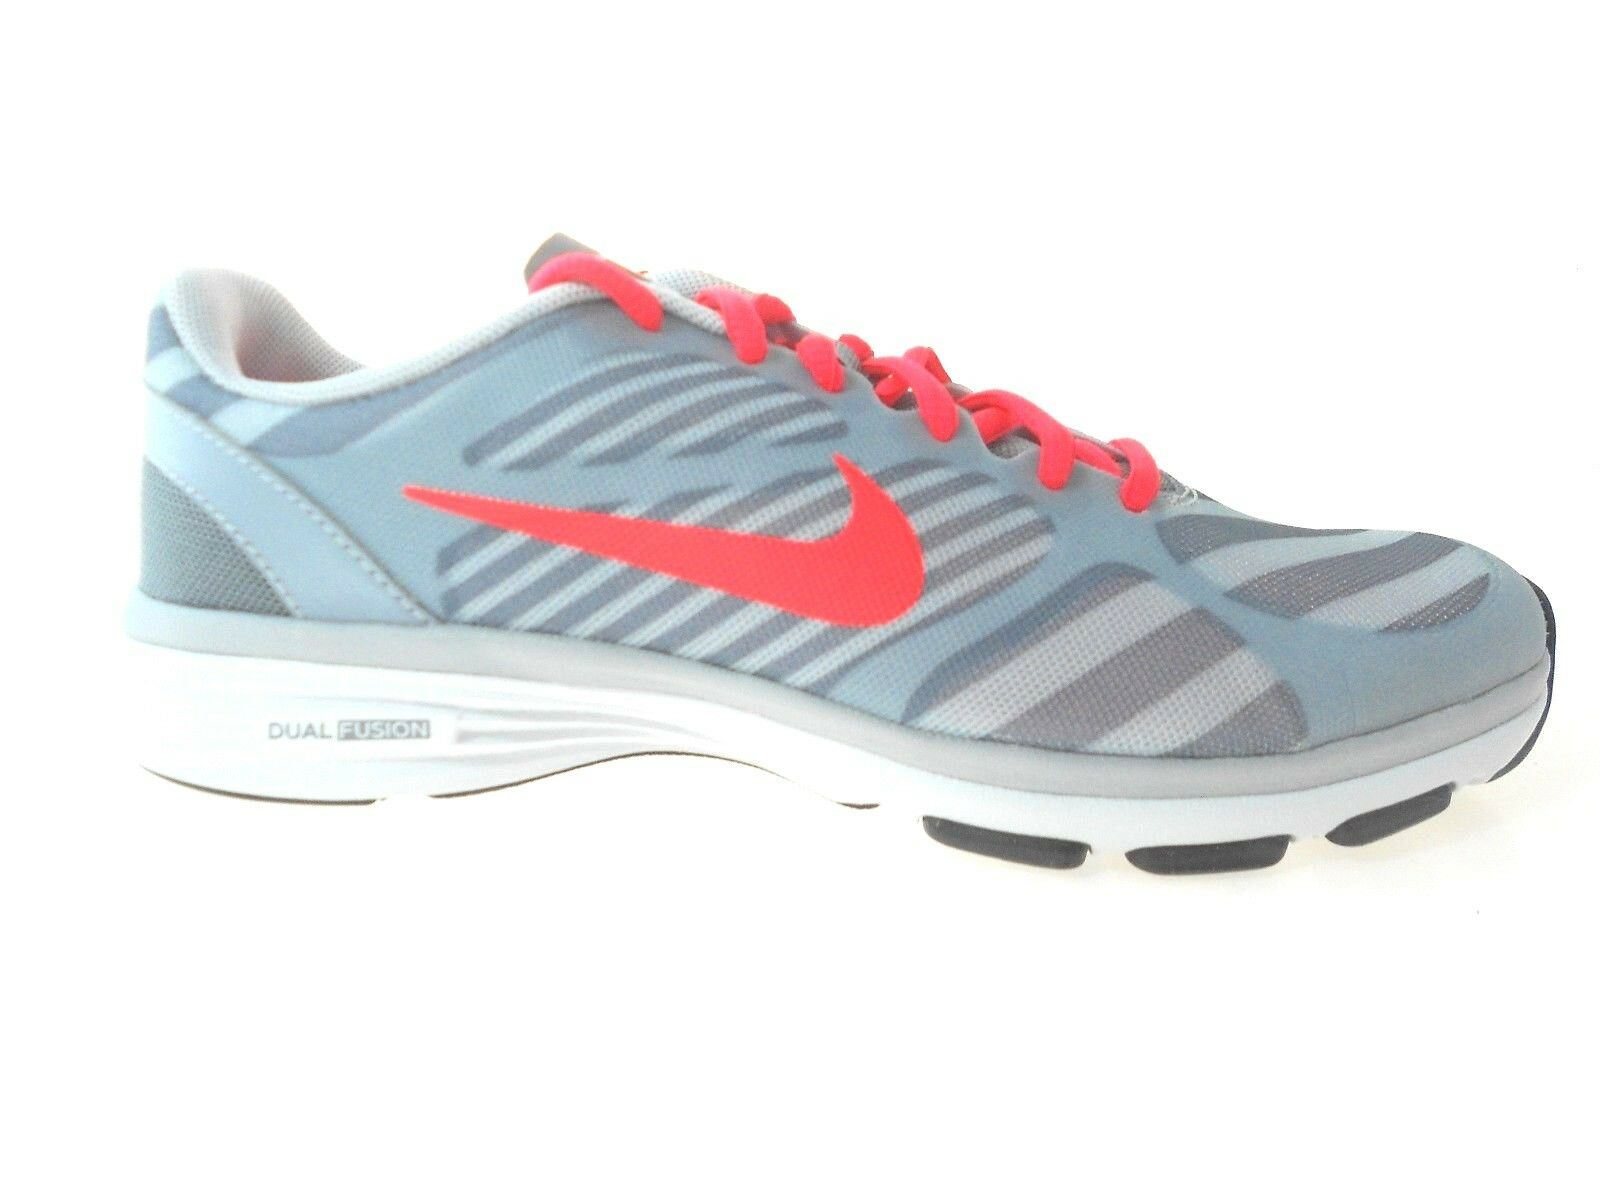 NIKE gris/RED DUAL FUSION TR PRINT femmes WOLF gris/RED NIKE RUNNING Chaussures  579812-013 955530